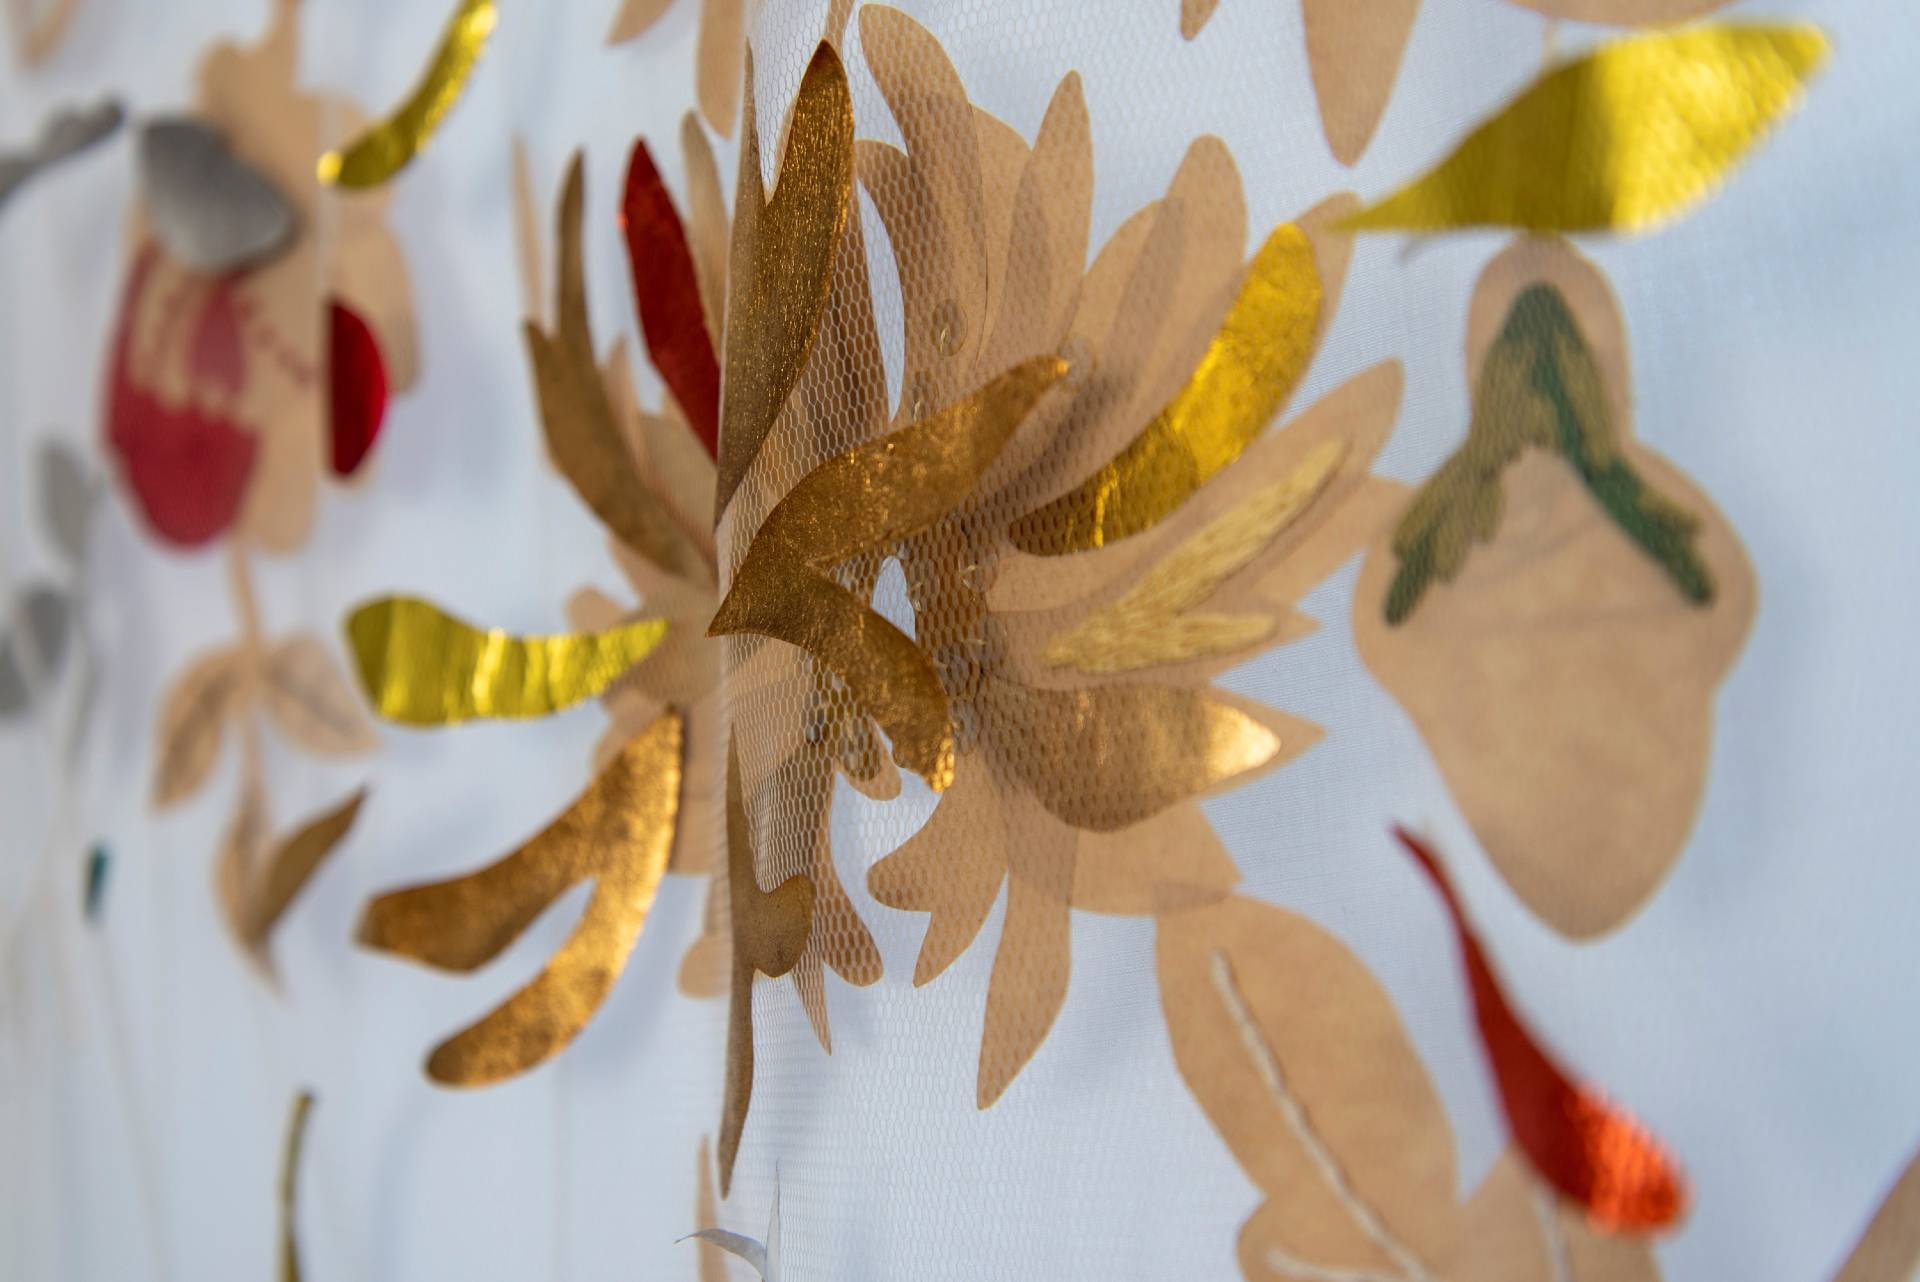 Handmade flowers on mesh with some shimmering gold petals